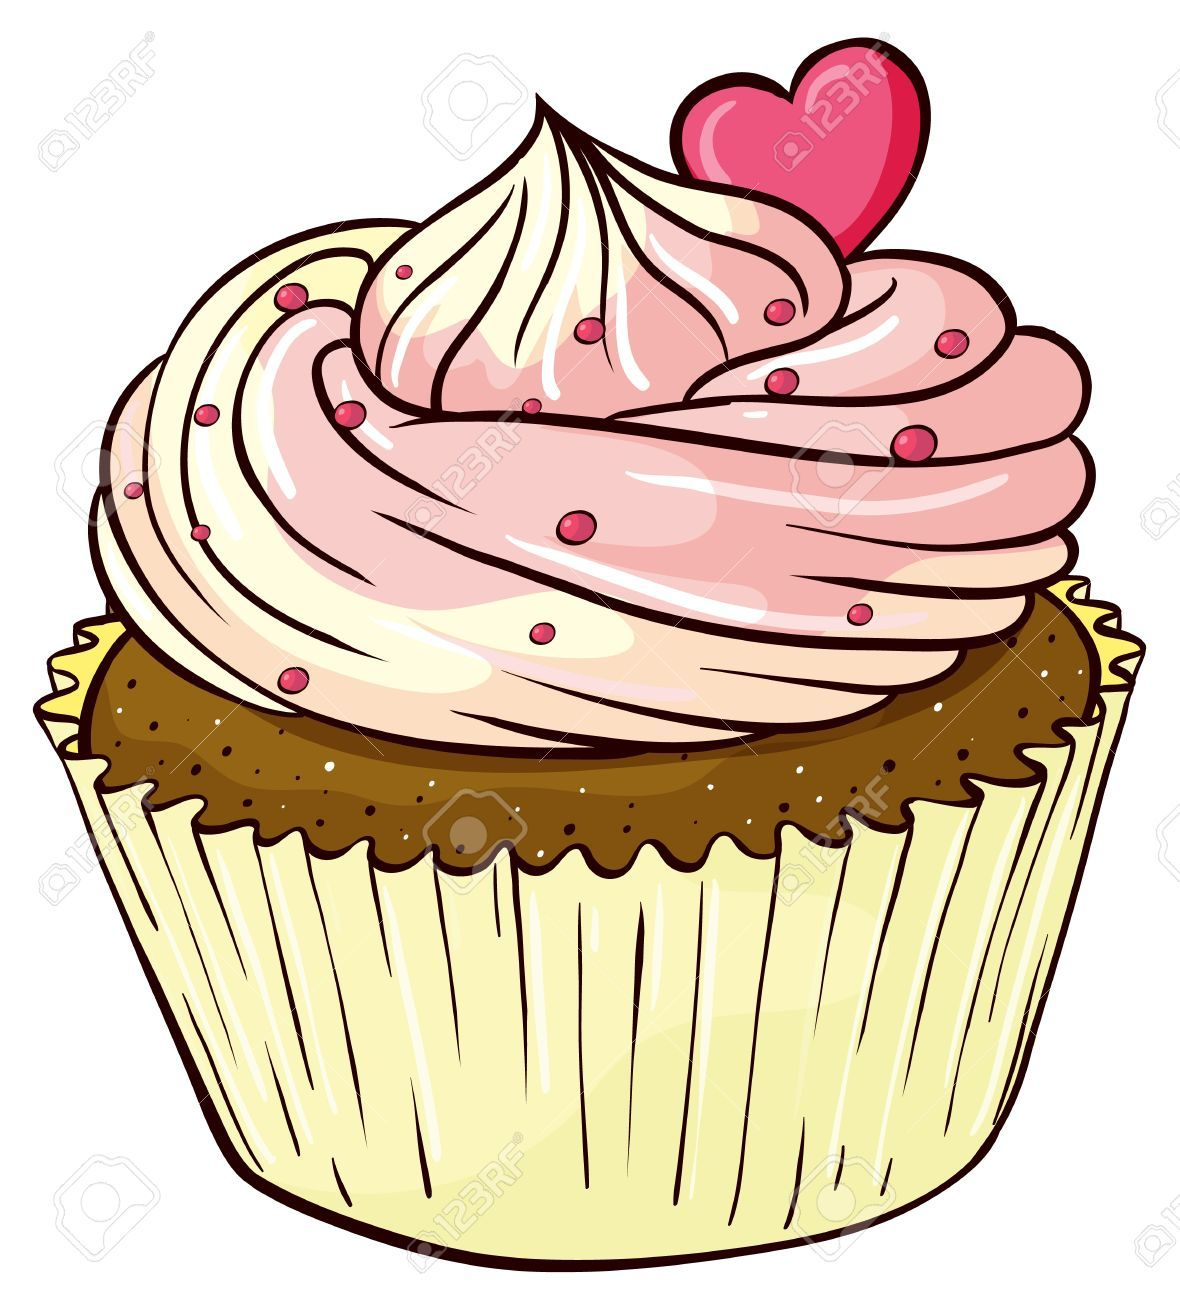 small resolution of cupcake clipart stock photos images royalty free cupcake clipart